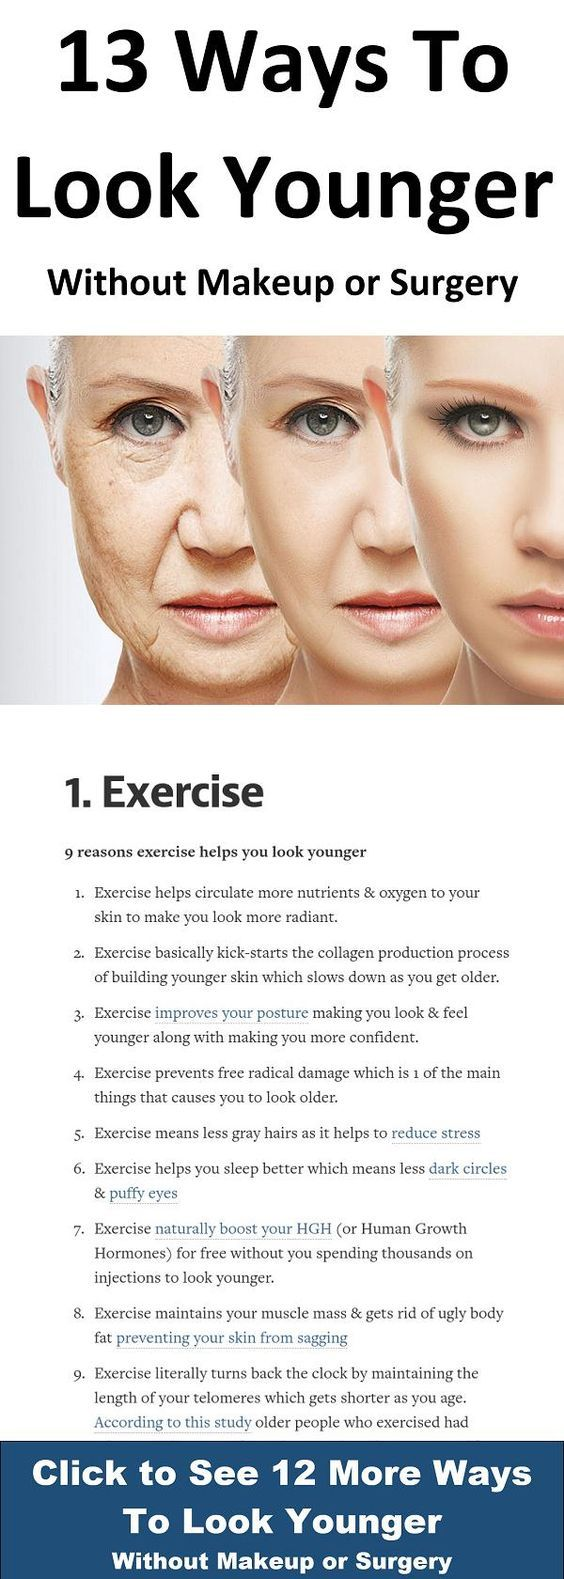 13 Ways To Look Younger Without Makeup Or Surgery Anti Aging Skin Products Sensitive Skin Care Aging Skin Care